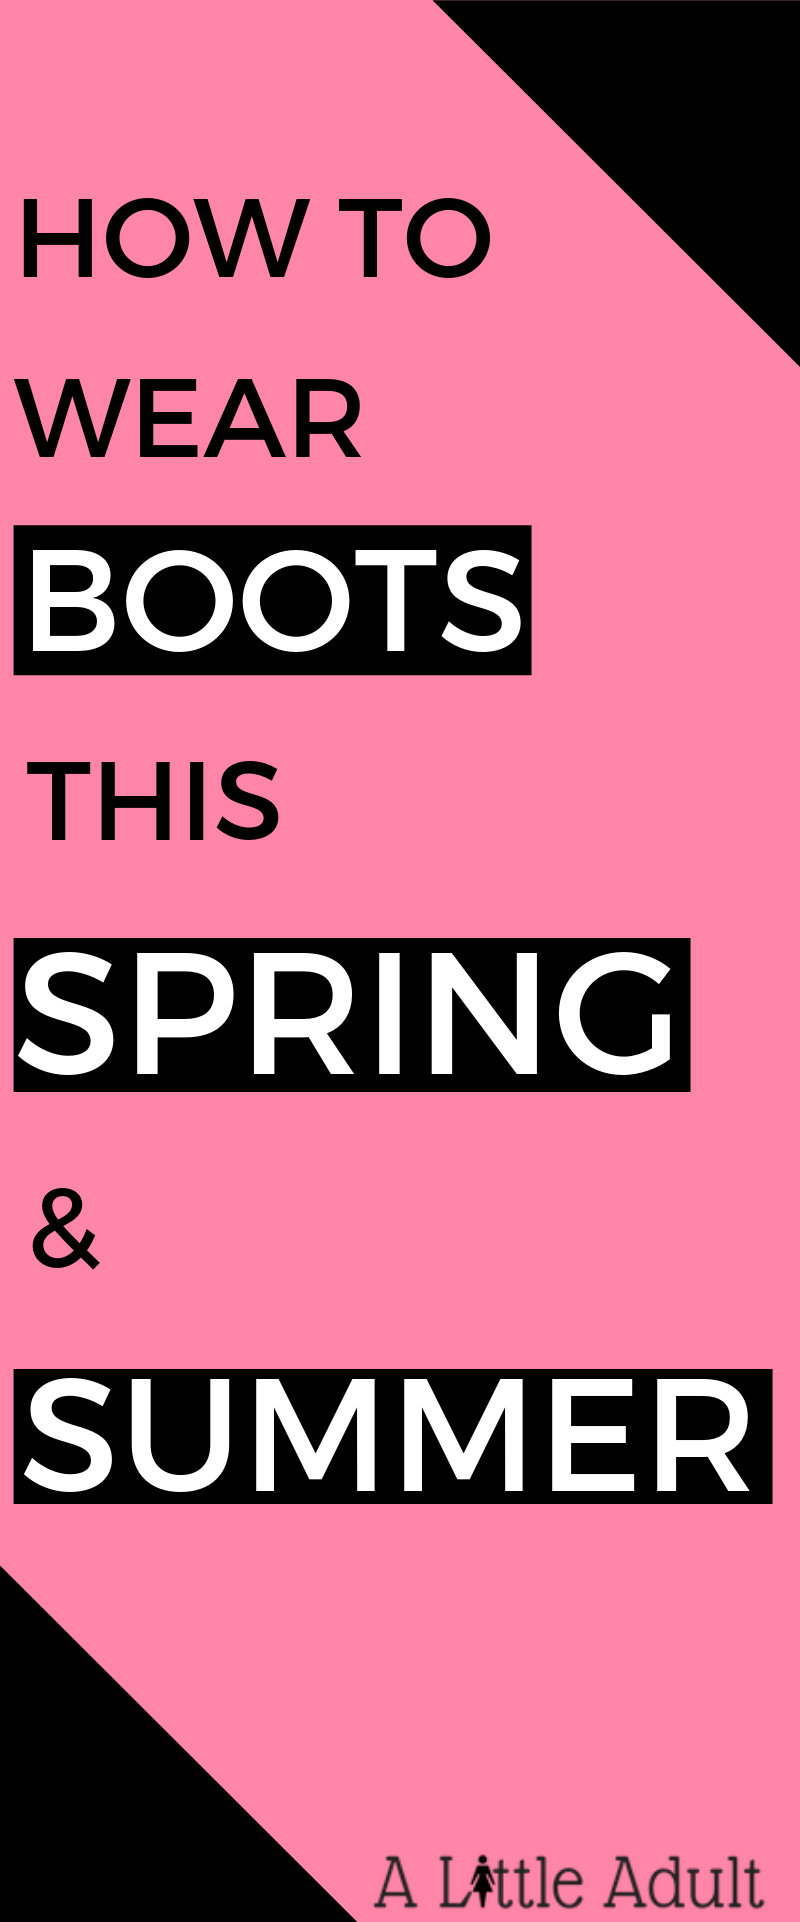 HOW TO WEAR BOOTS THIS SPRING & SUMMER